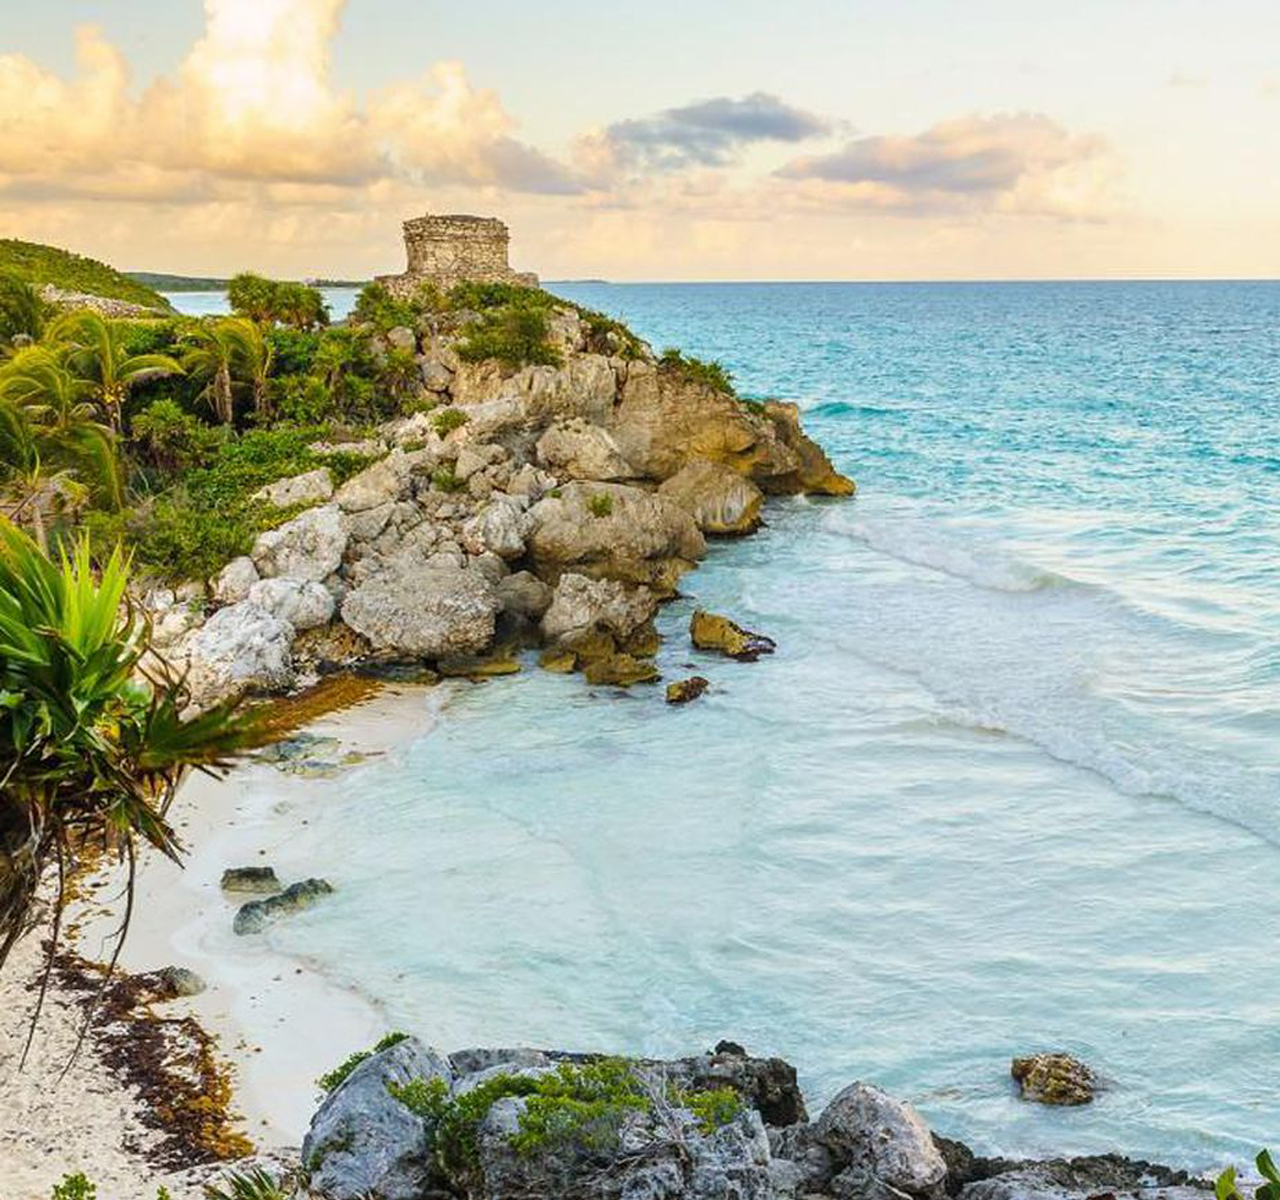 Tune-in in tulum // jan 29 - feb 2 - Spanish for 'you will heal,' Sanará boutique hotel in Tulum provides the perfect backdrop for rest and relaxation this winter. Join Terri as she leads you to discover and experience the vast space available in your own mind, and learn to re-channel your energy toward healing, creativity, connection and reflection to move powerfully forward in your life. You'll spend 4 nights and 5 days in a spectacular Mexican beach oasis that features a beachfront yoga studio, state-of-the-art wellness center, and highly acclaimed restaurant. Click here for more information and booking.